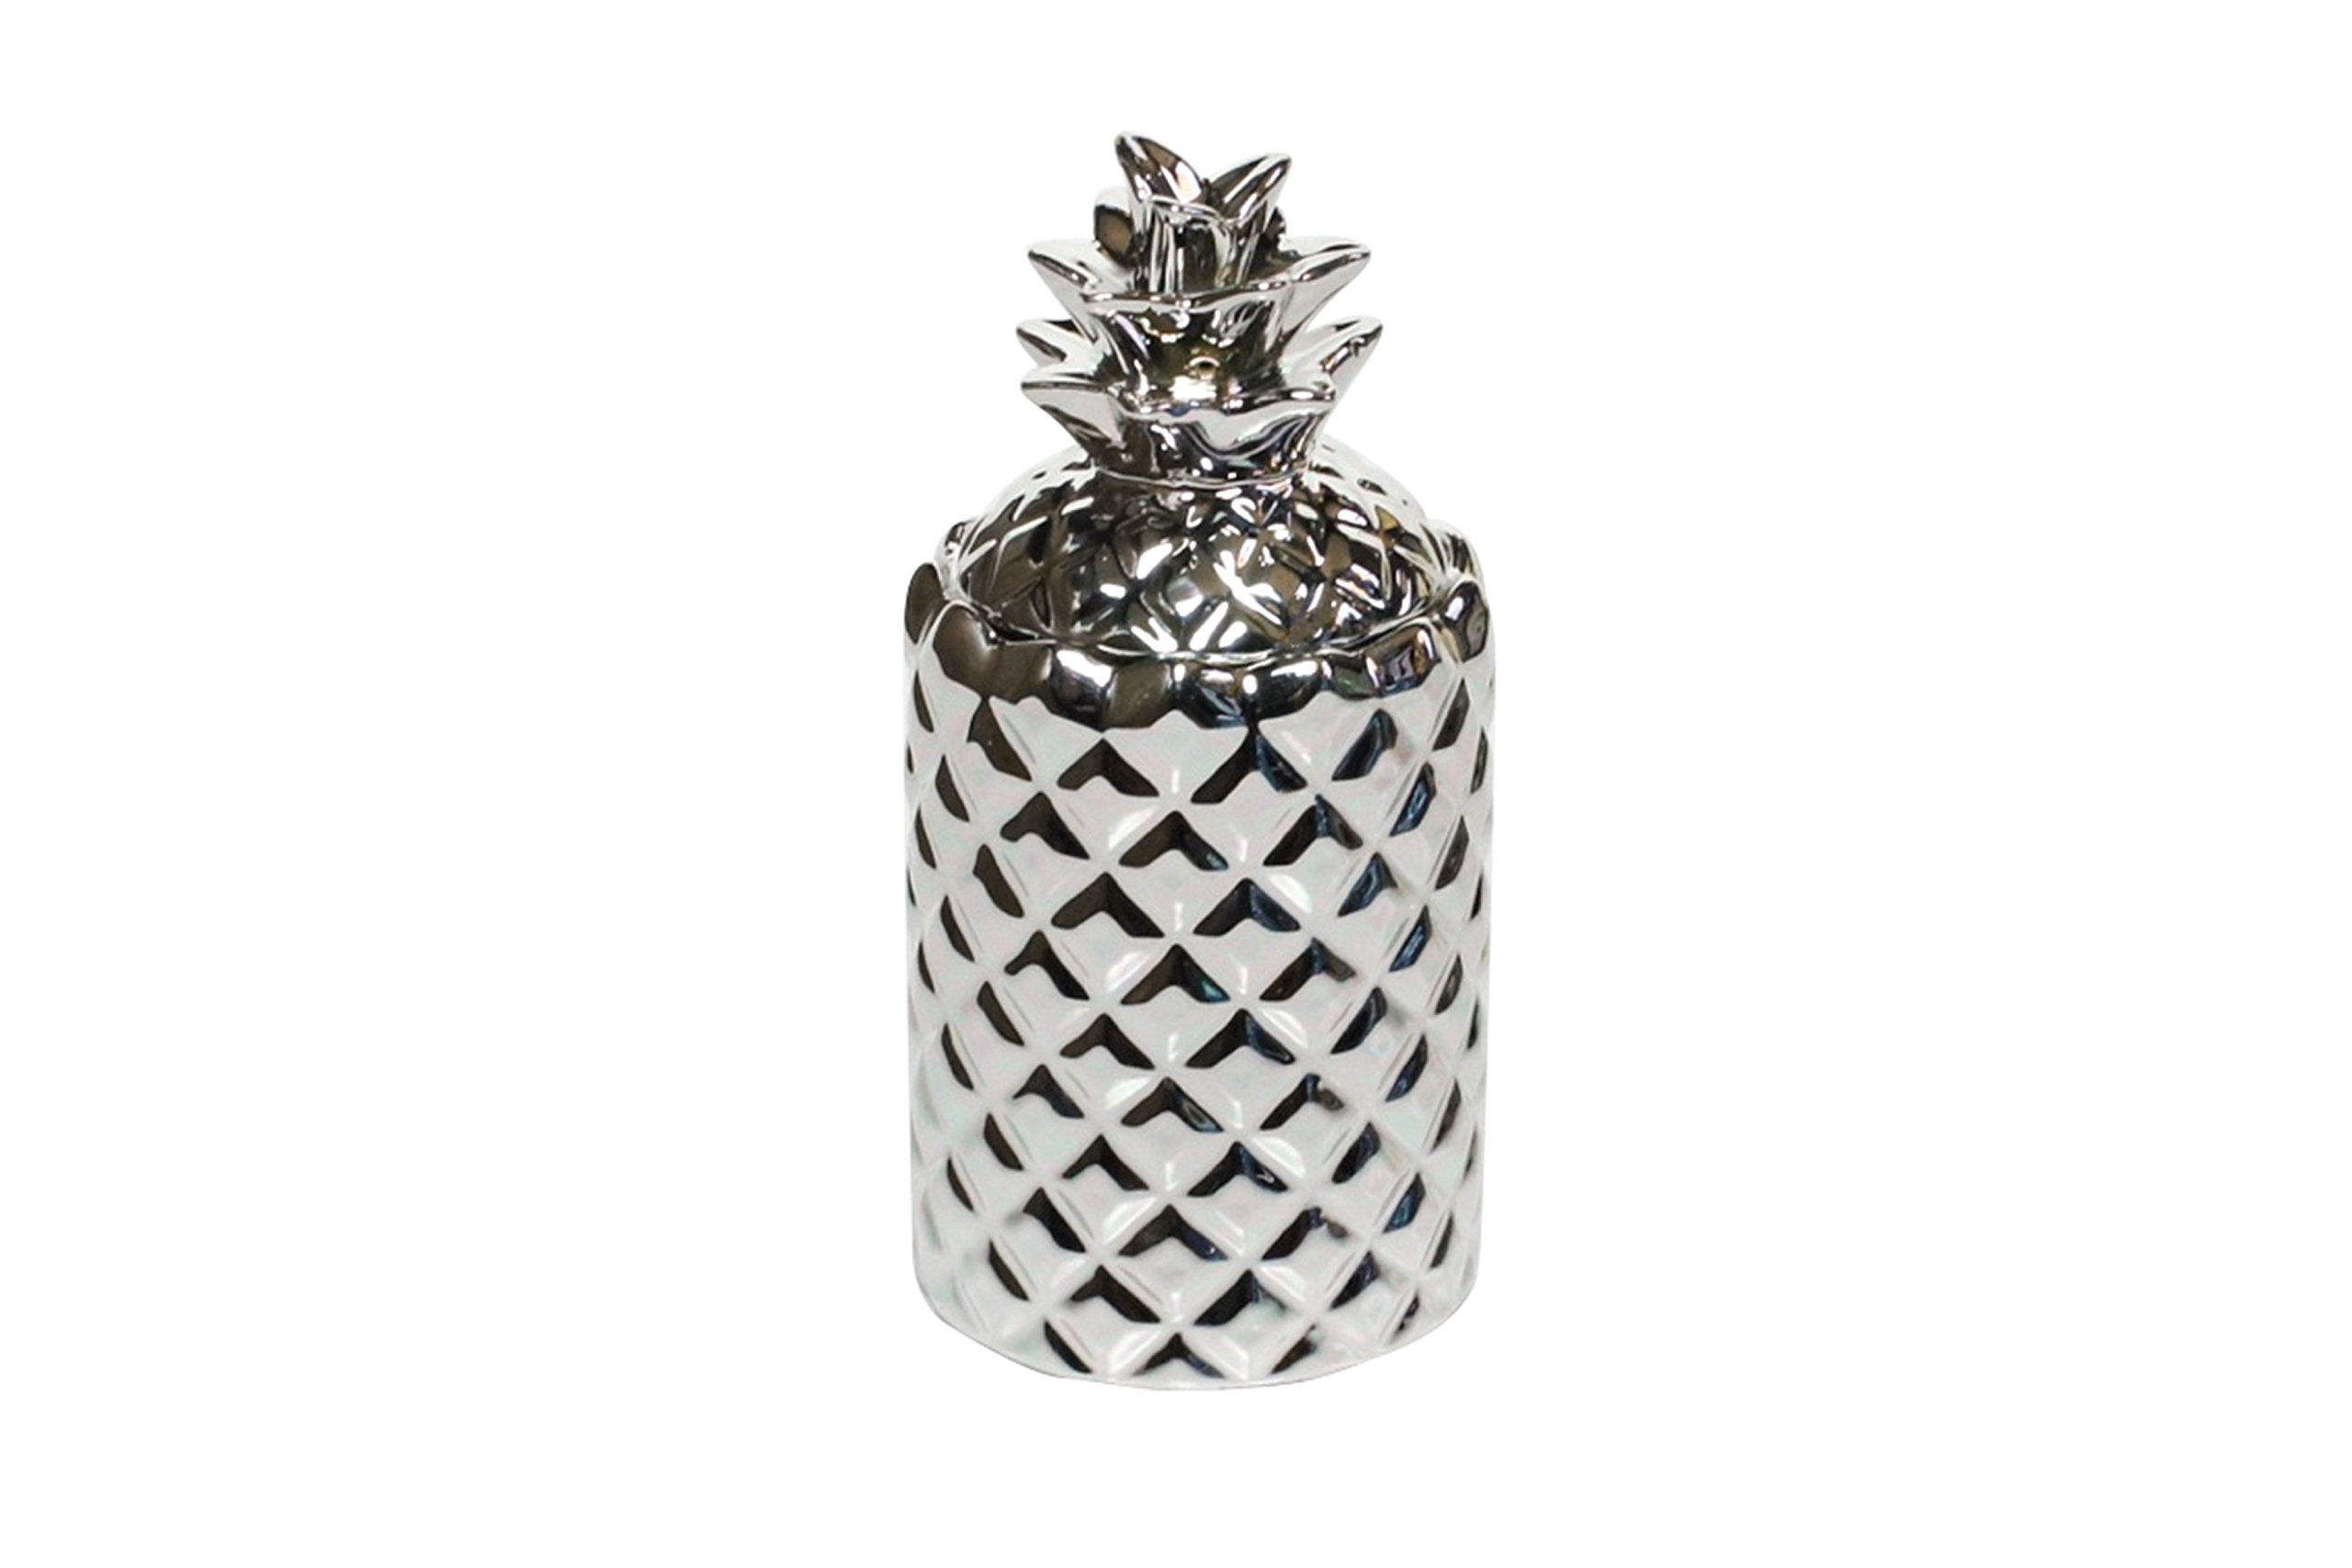 Thompson Ferrier - Pineapple scented candle collection - White Tea & Mint fragrance Home Decor Candle - Silver - Hand sculpted and hand poured with the finest essential oils